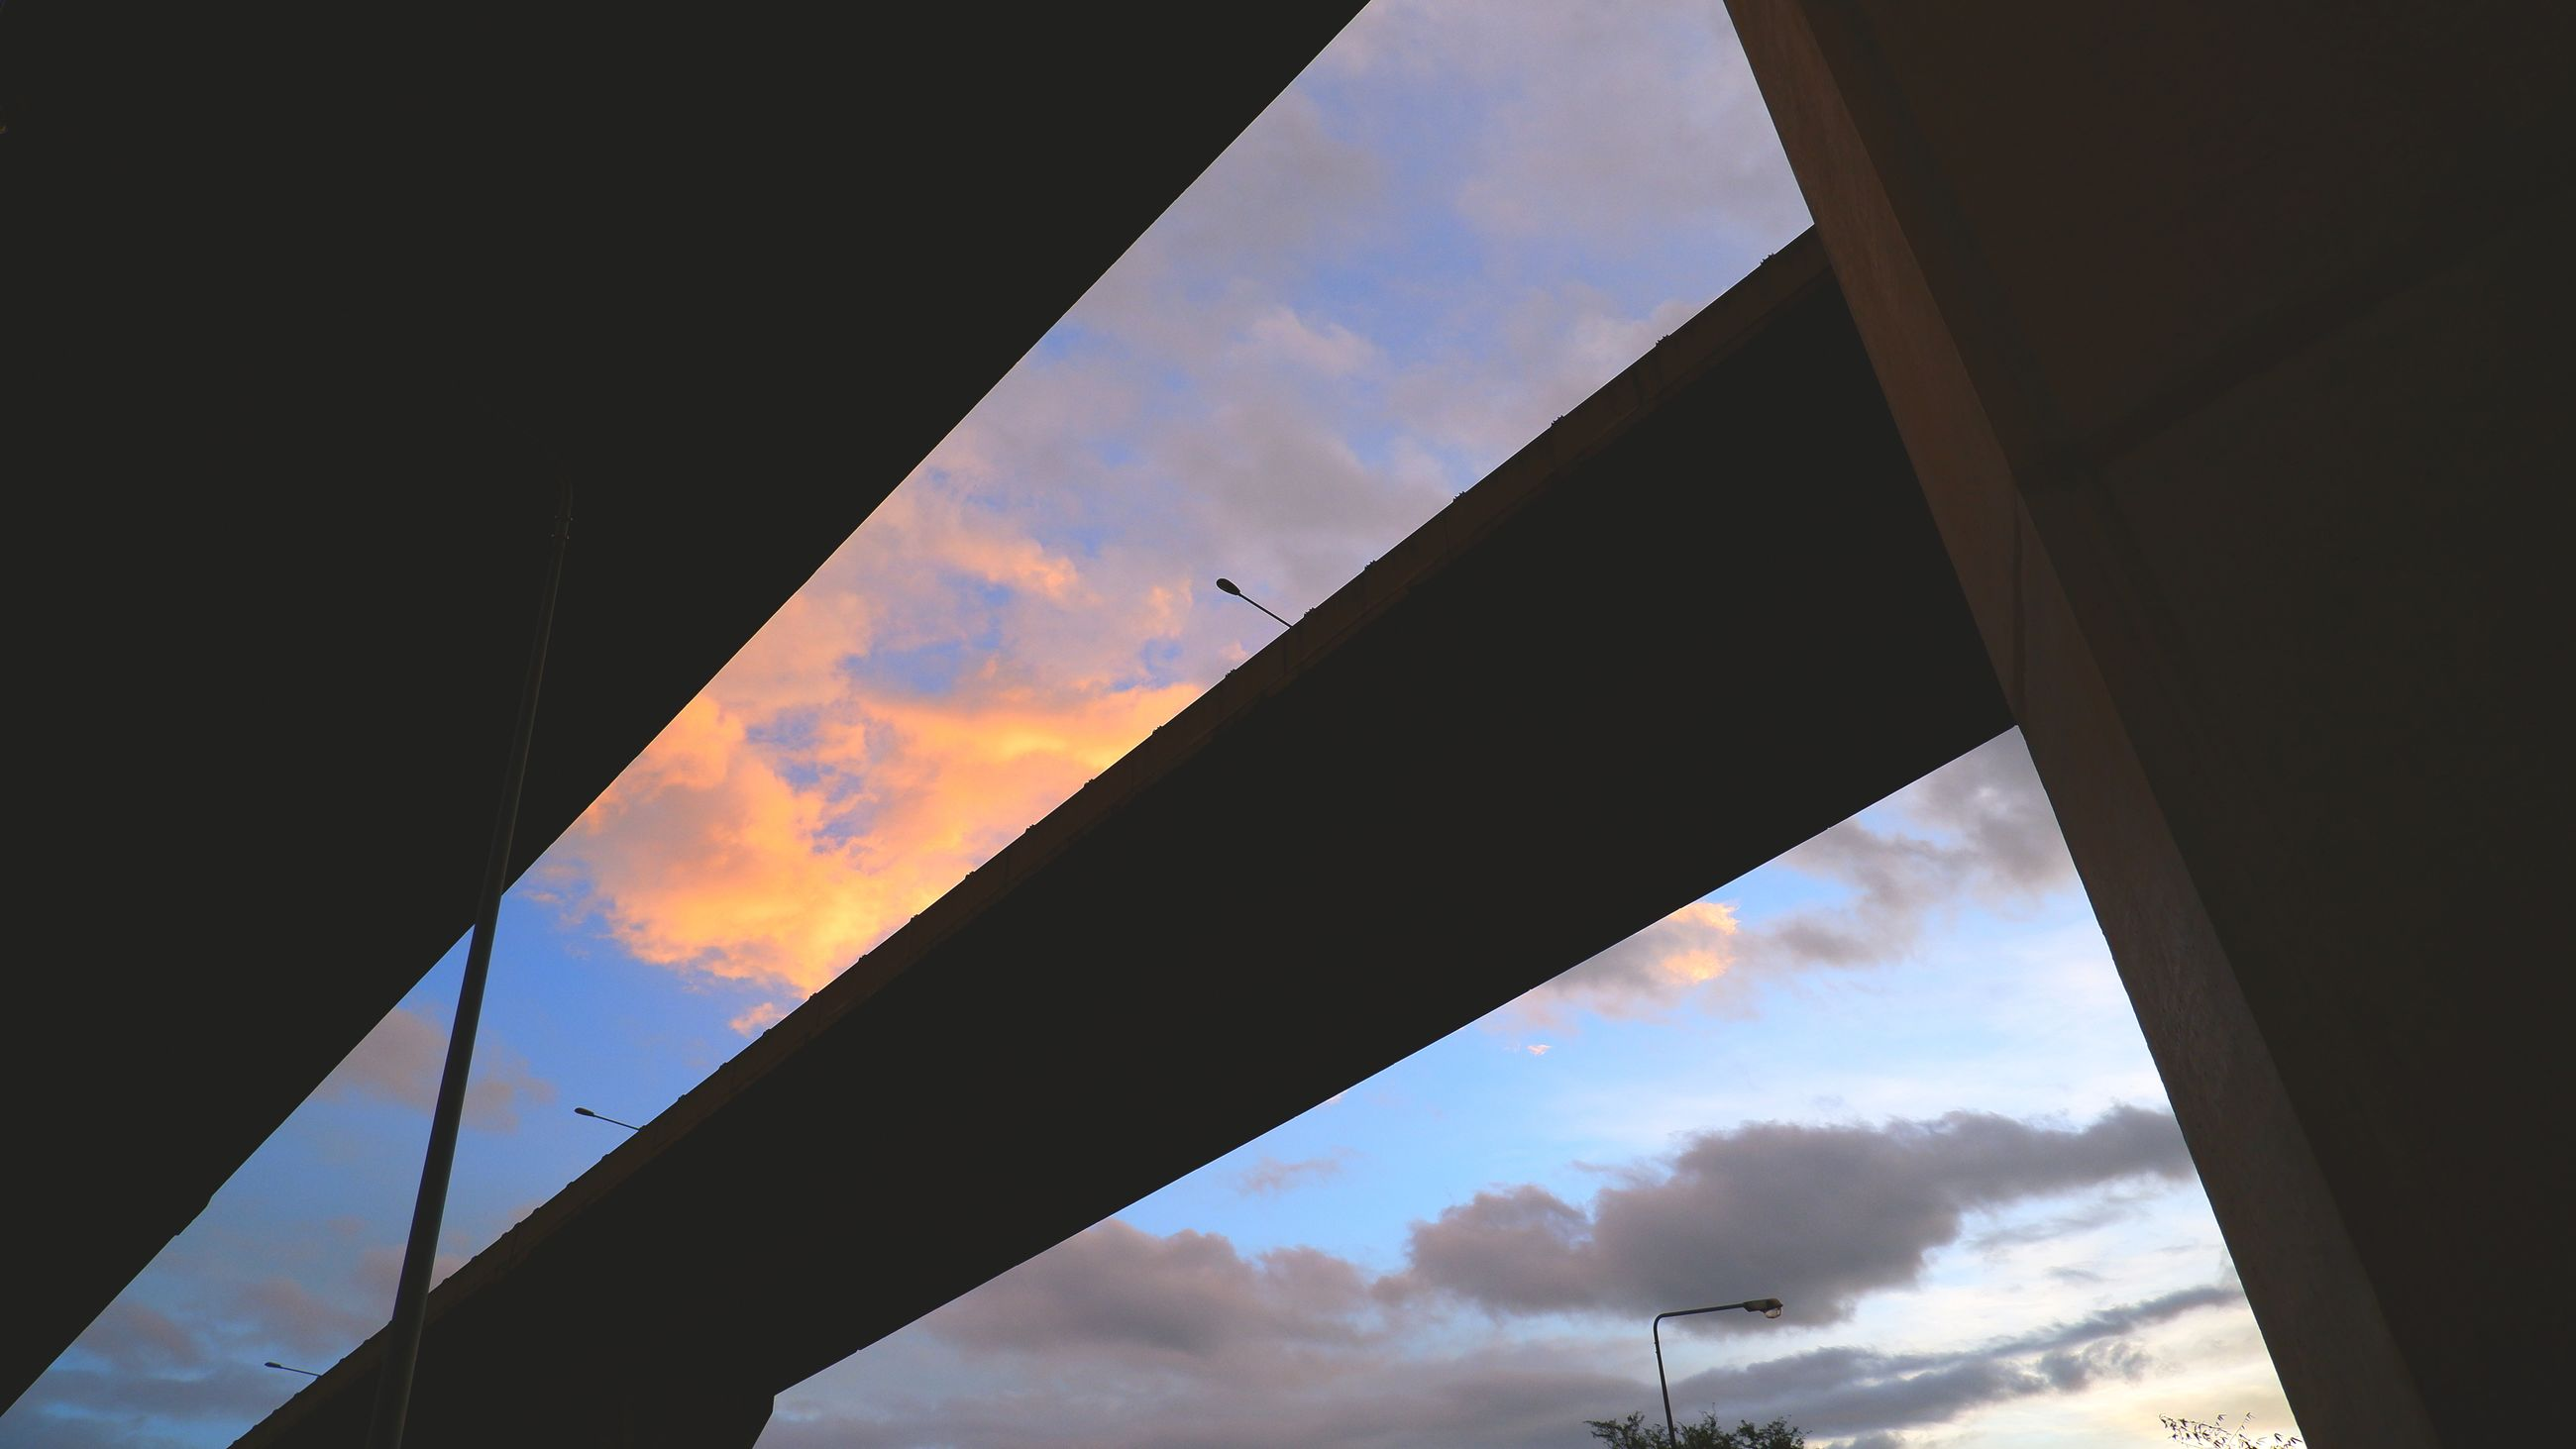 sky, cloud, architecture, light, reflection, built structure, nature, silhouette, no people, sunlight, low angle view, transportation, blue, outdoors, sunset, window